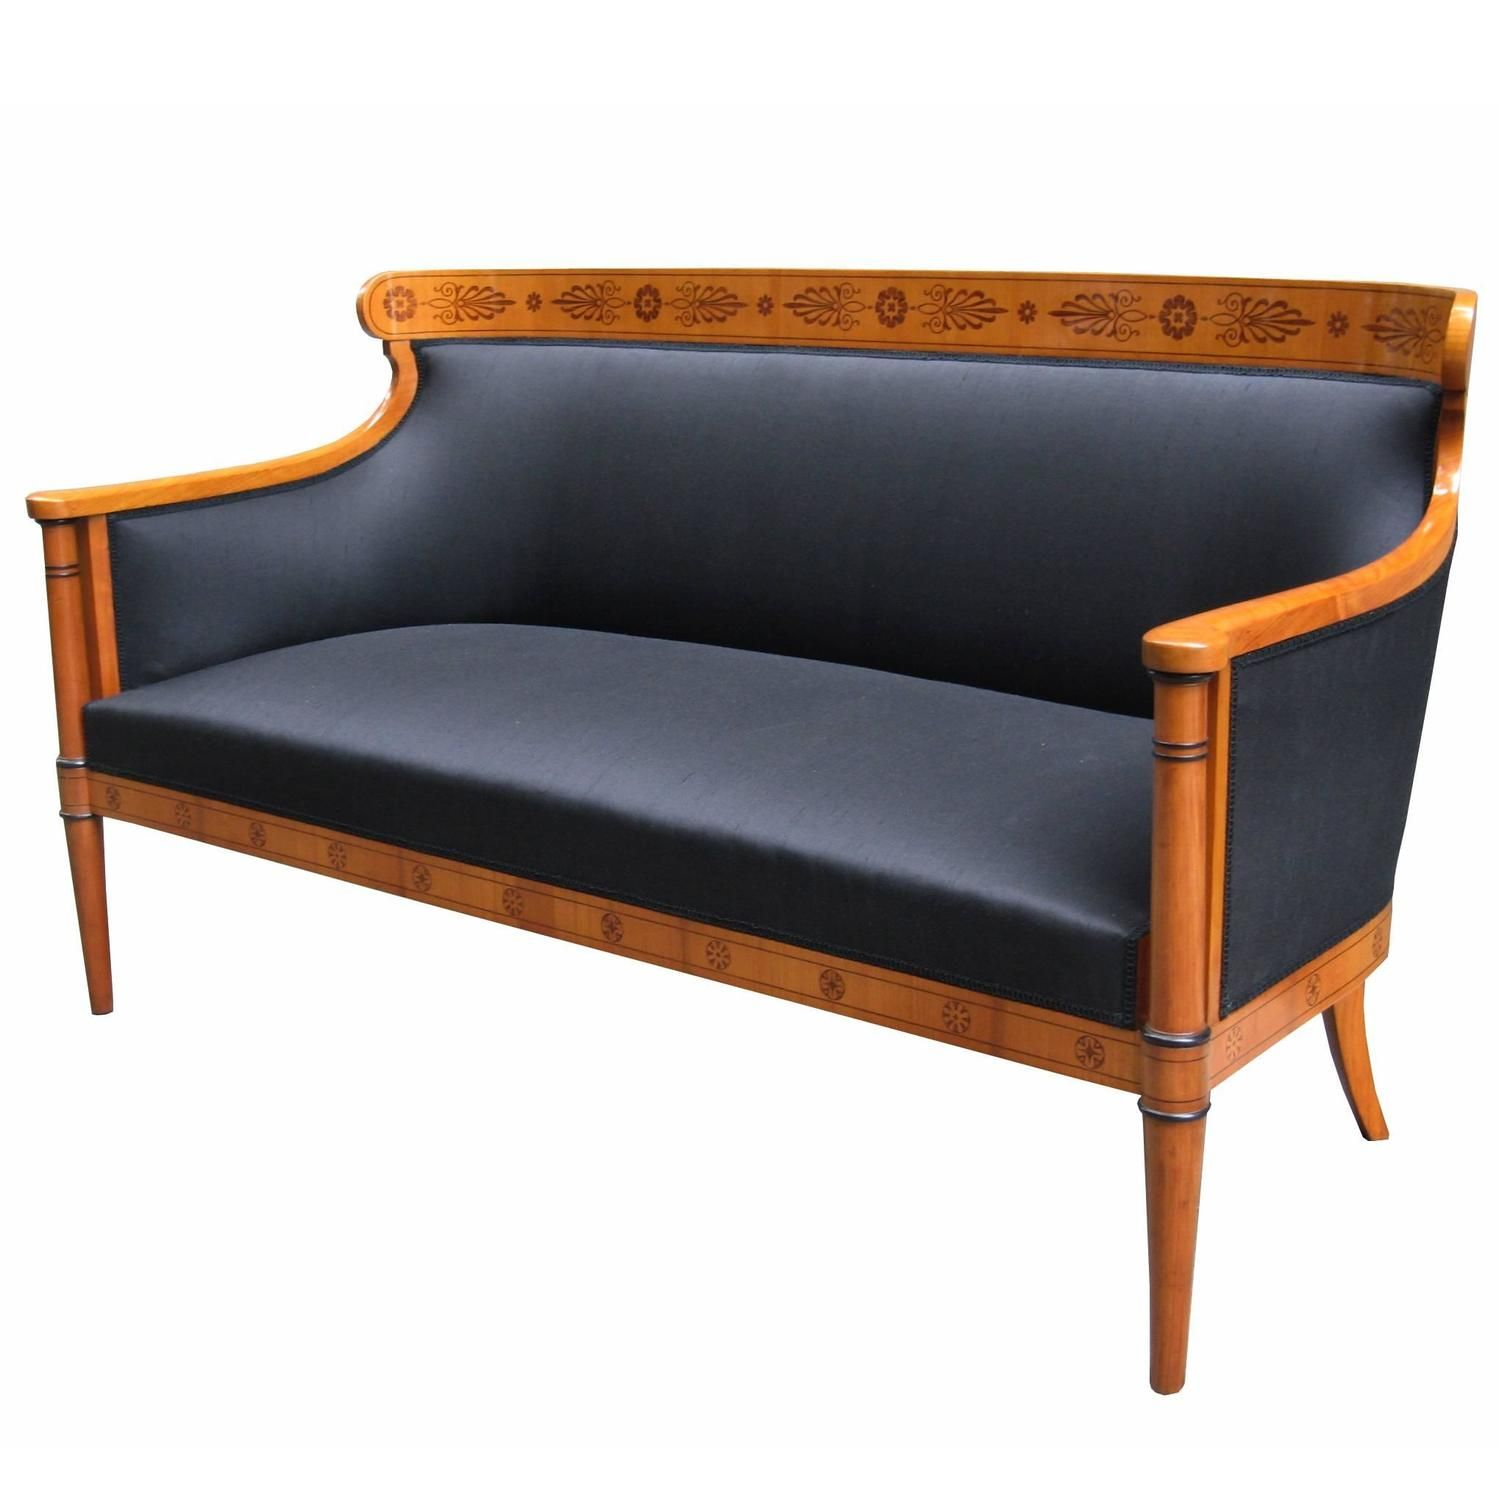 Fine Biedermeier Sofa Biedermeier Furniture Vintage Sofa Vintage Couch